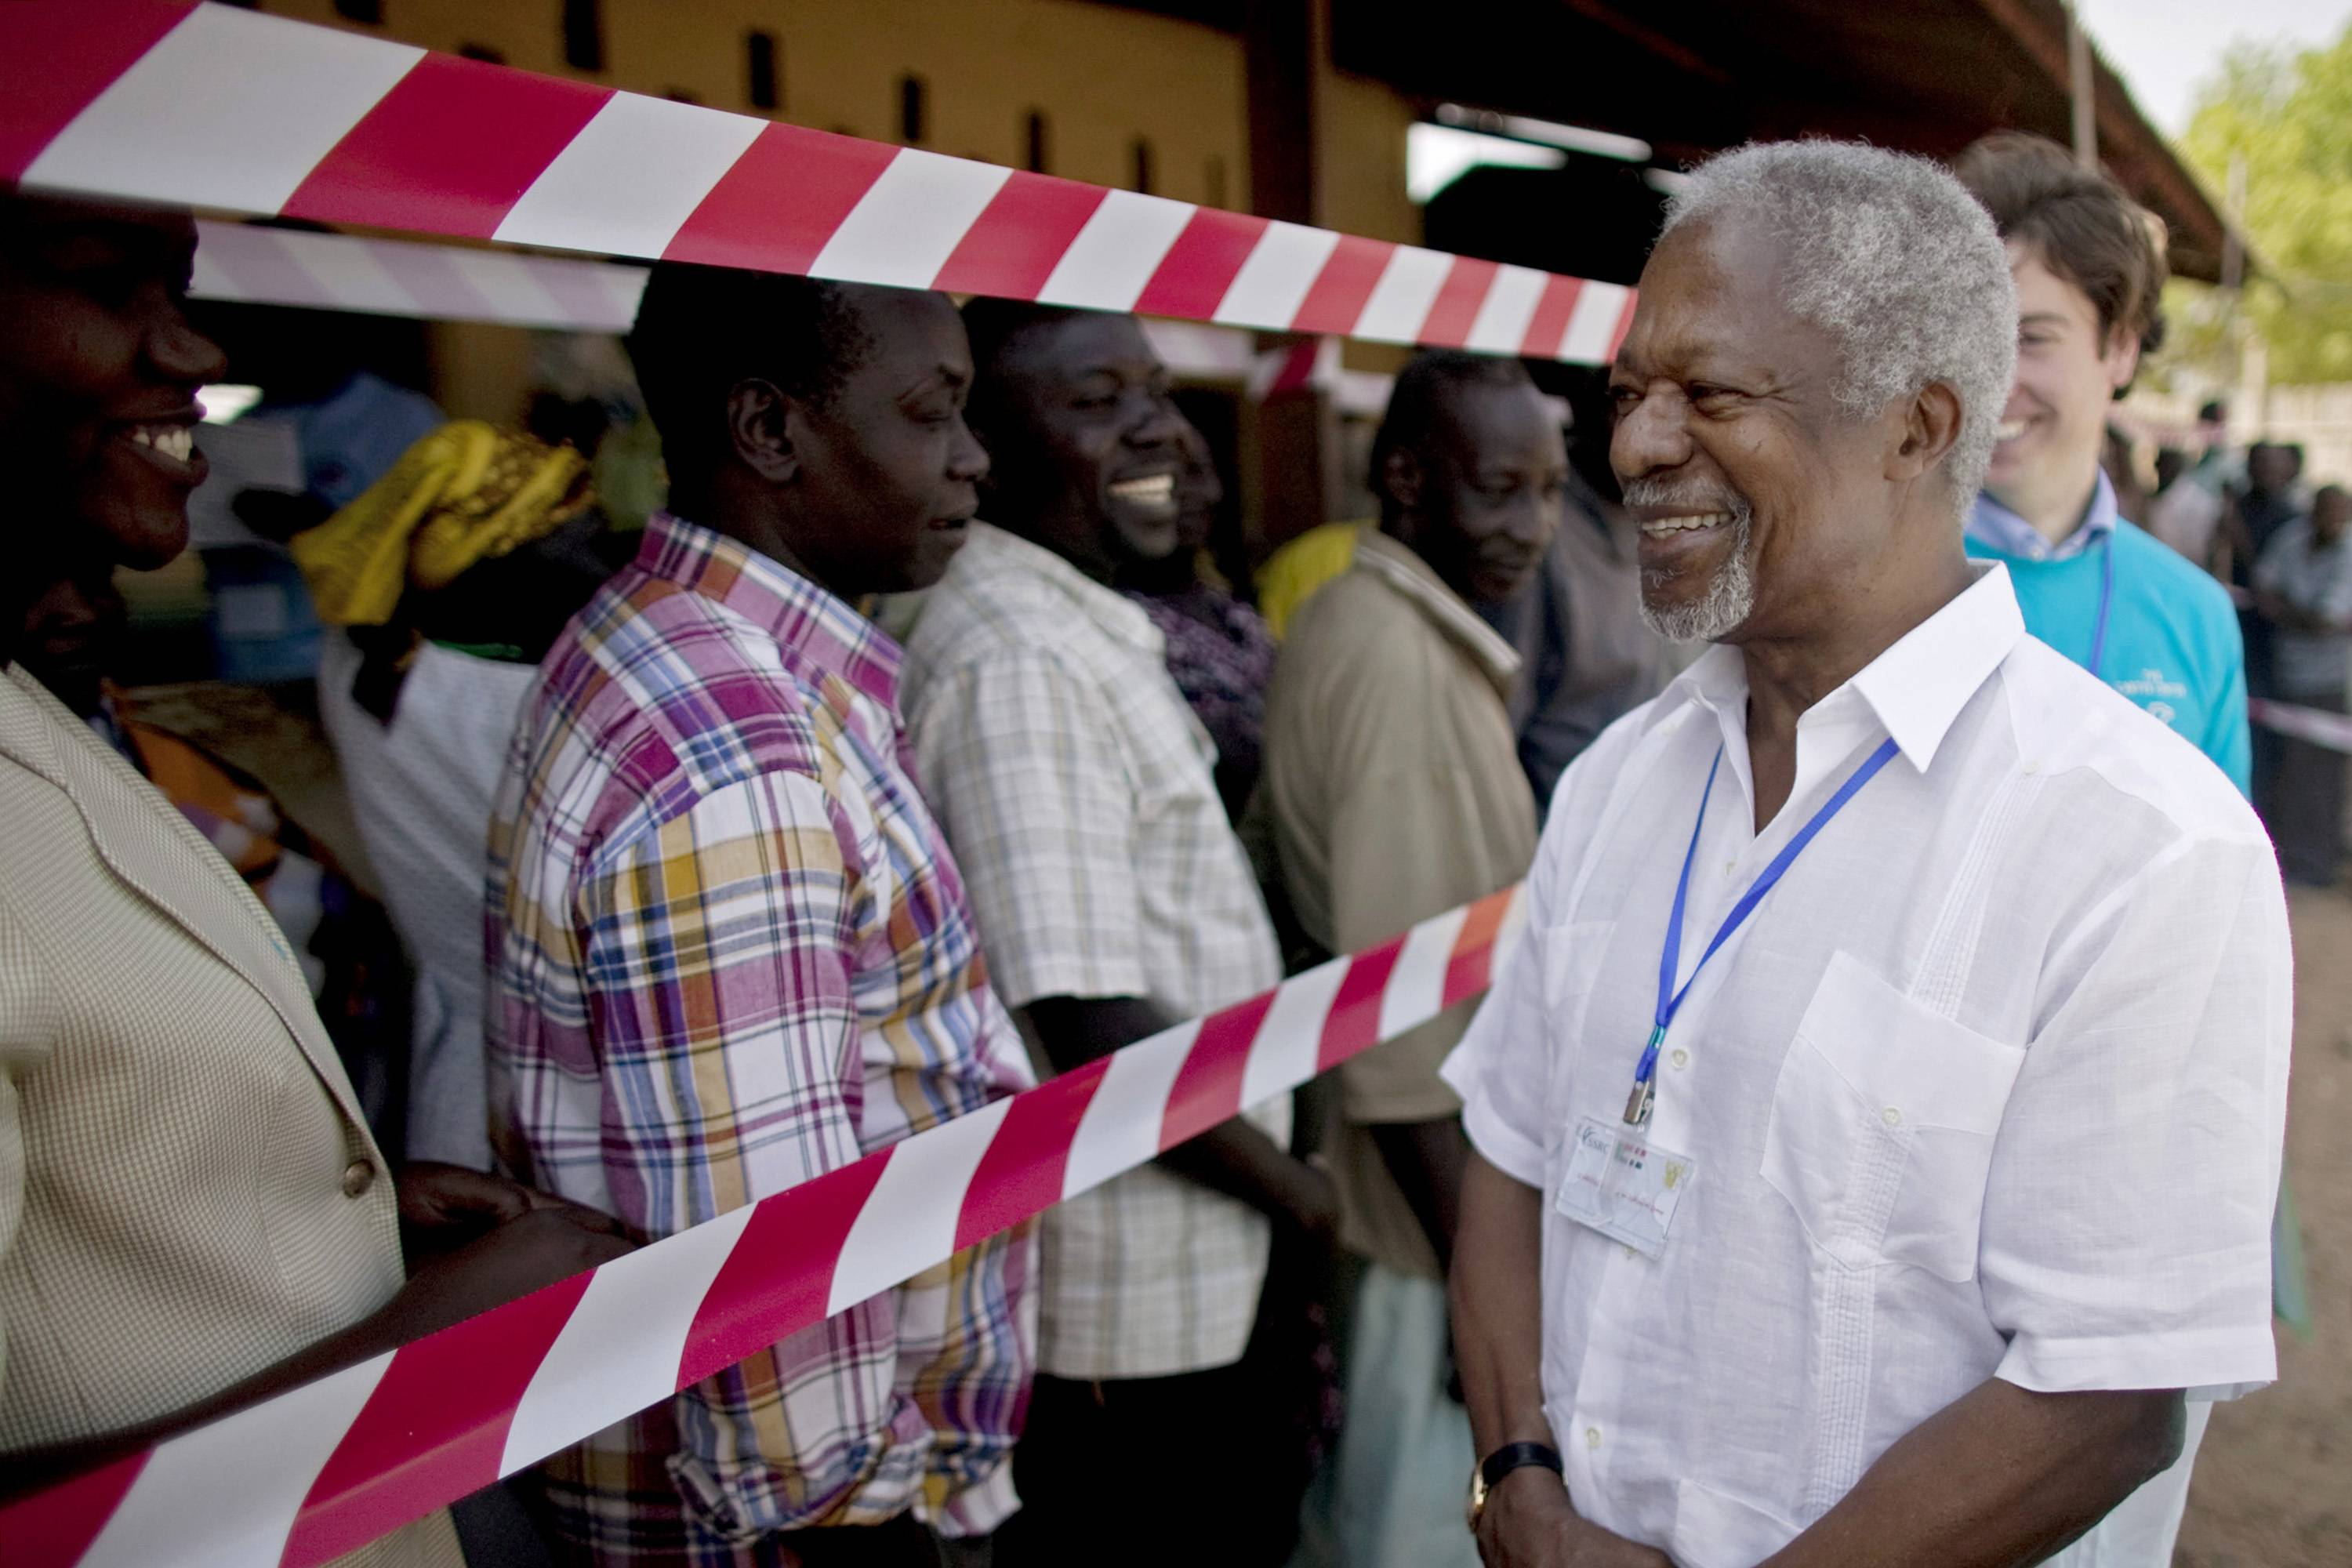 FILE - In this Sunday, Jan. 9, 2011 file photo, former United Nations Secretary-General Kofi Annan, visits a independence referendum polling center in the southern Sudanese city of Juba. Annan left the U.N. far more committed to combating poverty, promoting equality and fighting for human rights and until his death Saturday, Aug. 18, 2018, he was speaking out about the turbulent world he saw moving from nations working together to solve problems to growing nationalism. (AP Photo/Pete Muller)